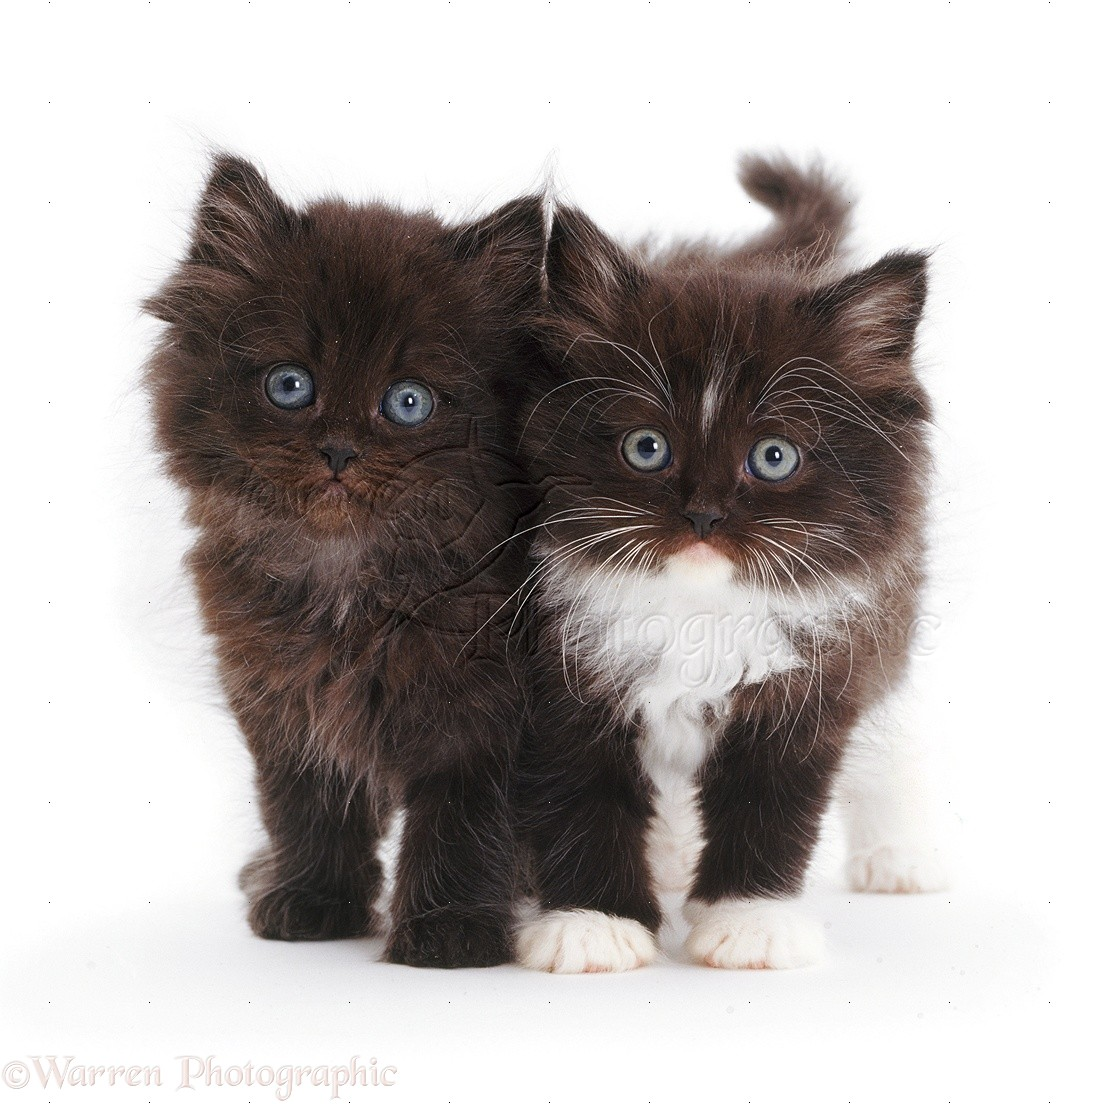 two cute fluffy kittens photo wp09346